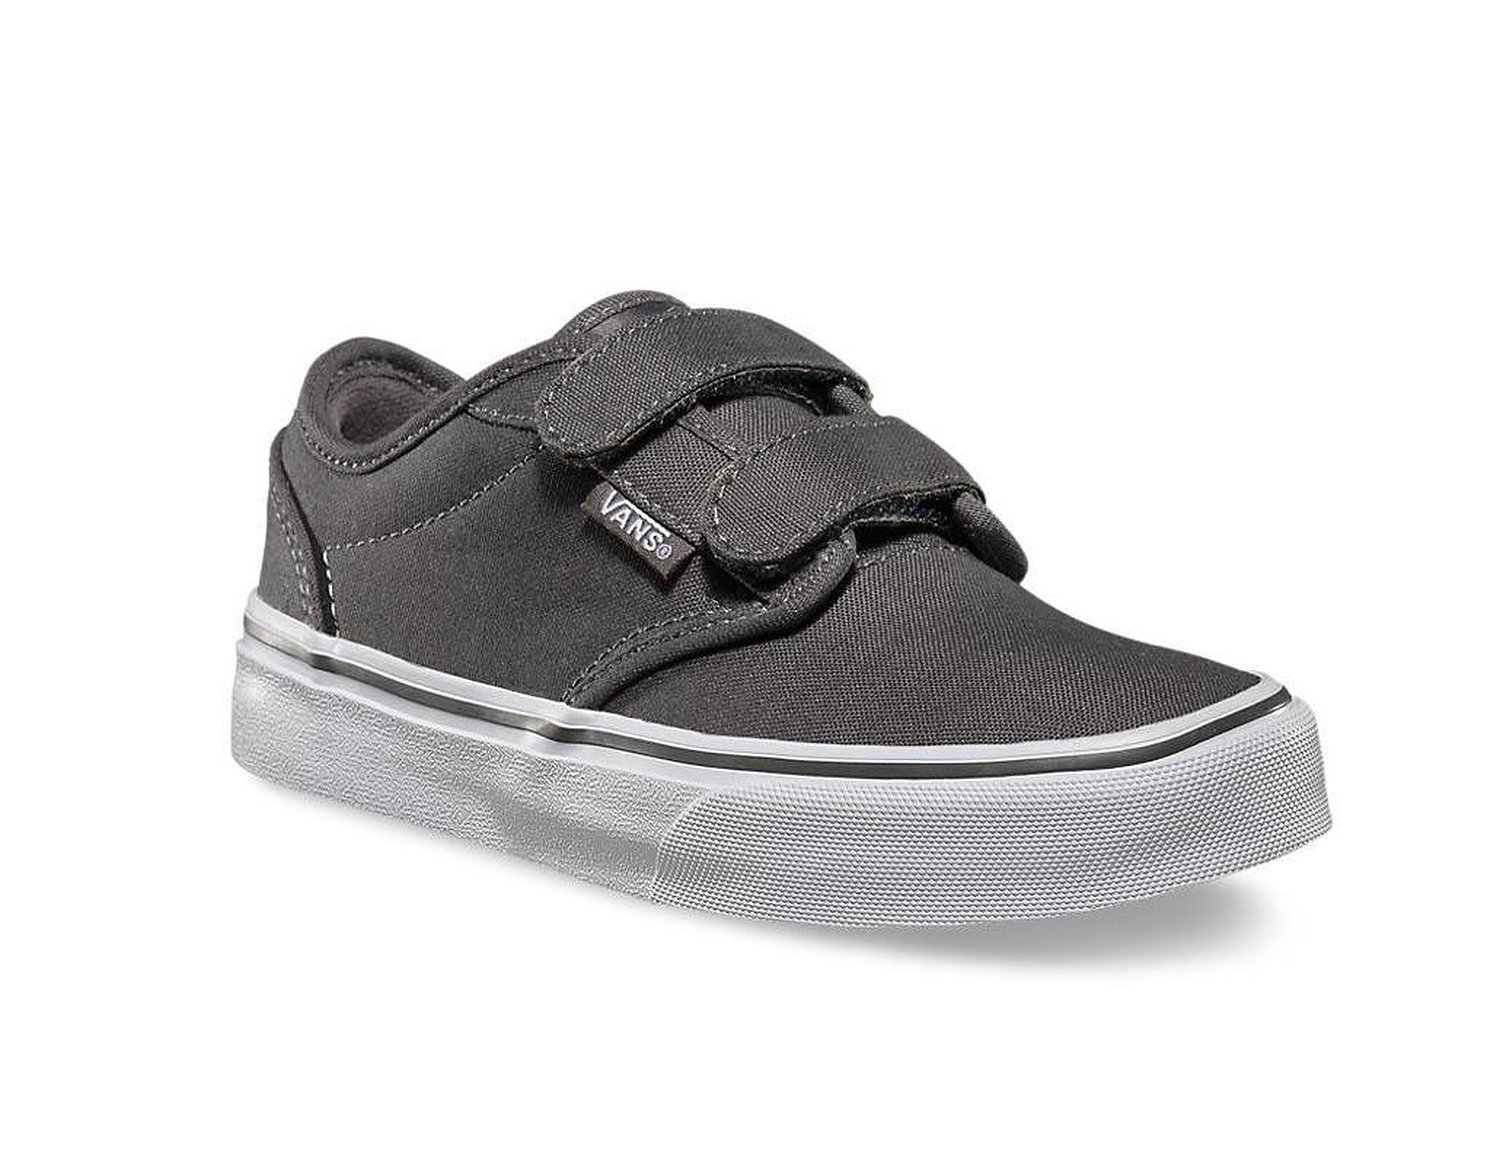 f14e44b43e Buy Vans Atwood Youth Sneakers Trainers Skate Shoes - Skulls Black ...